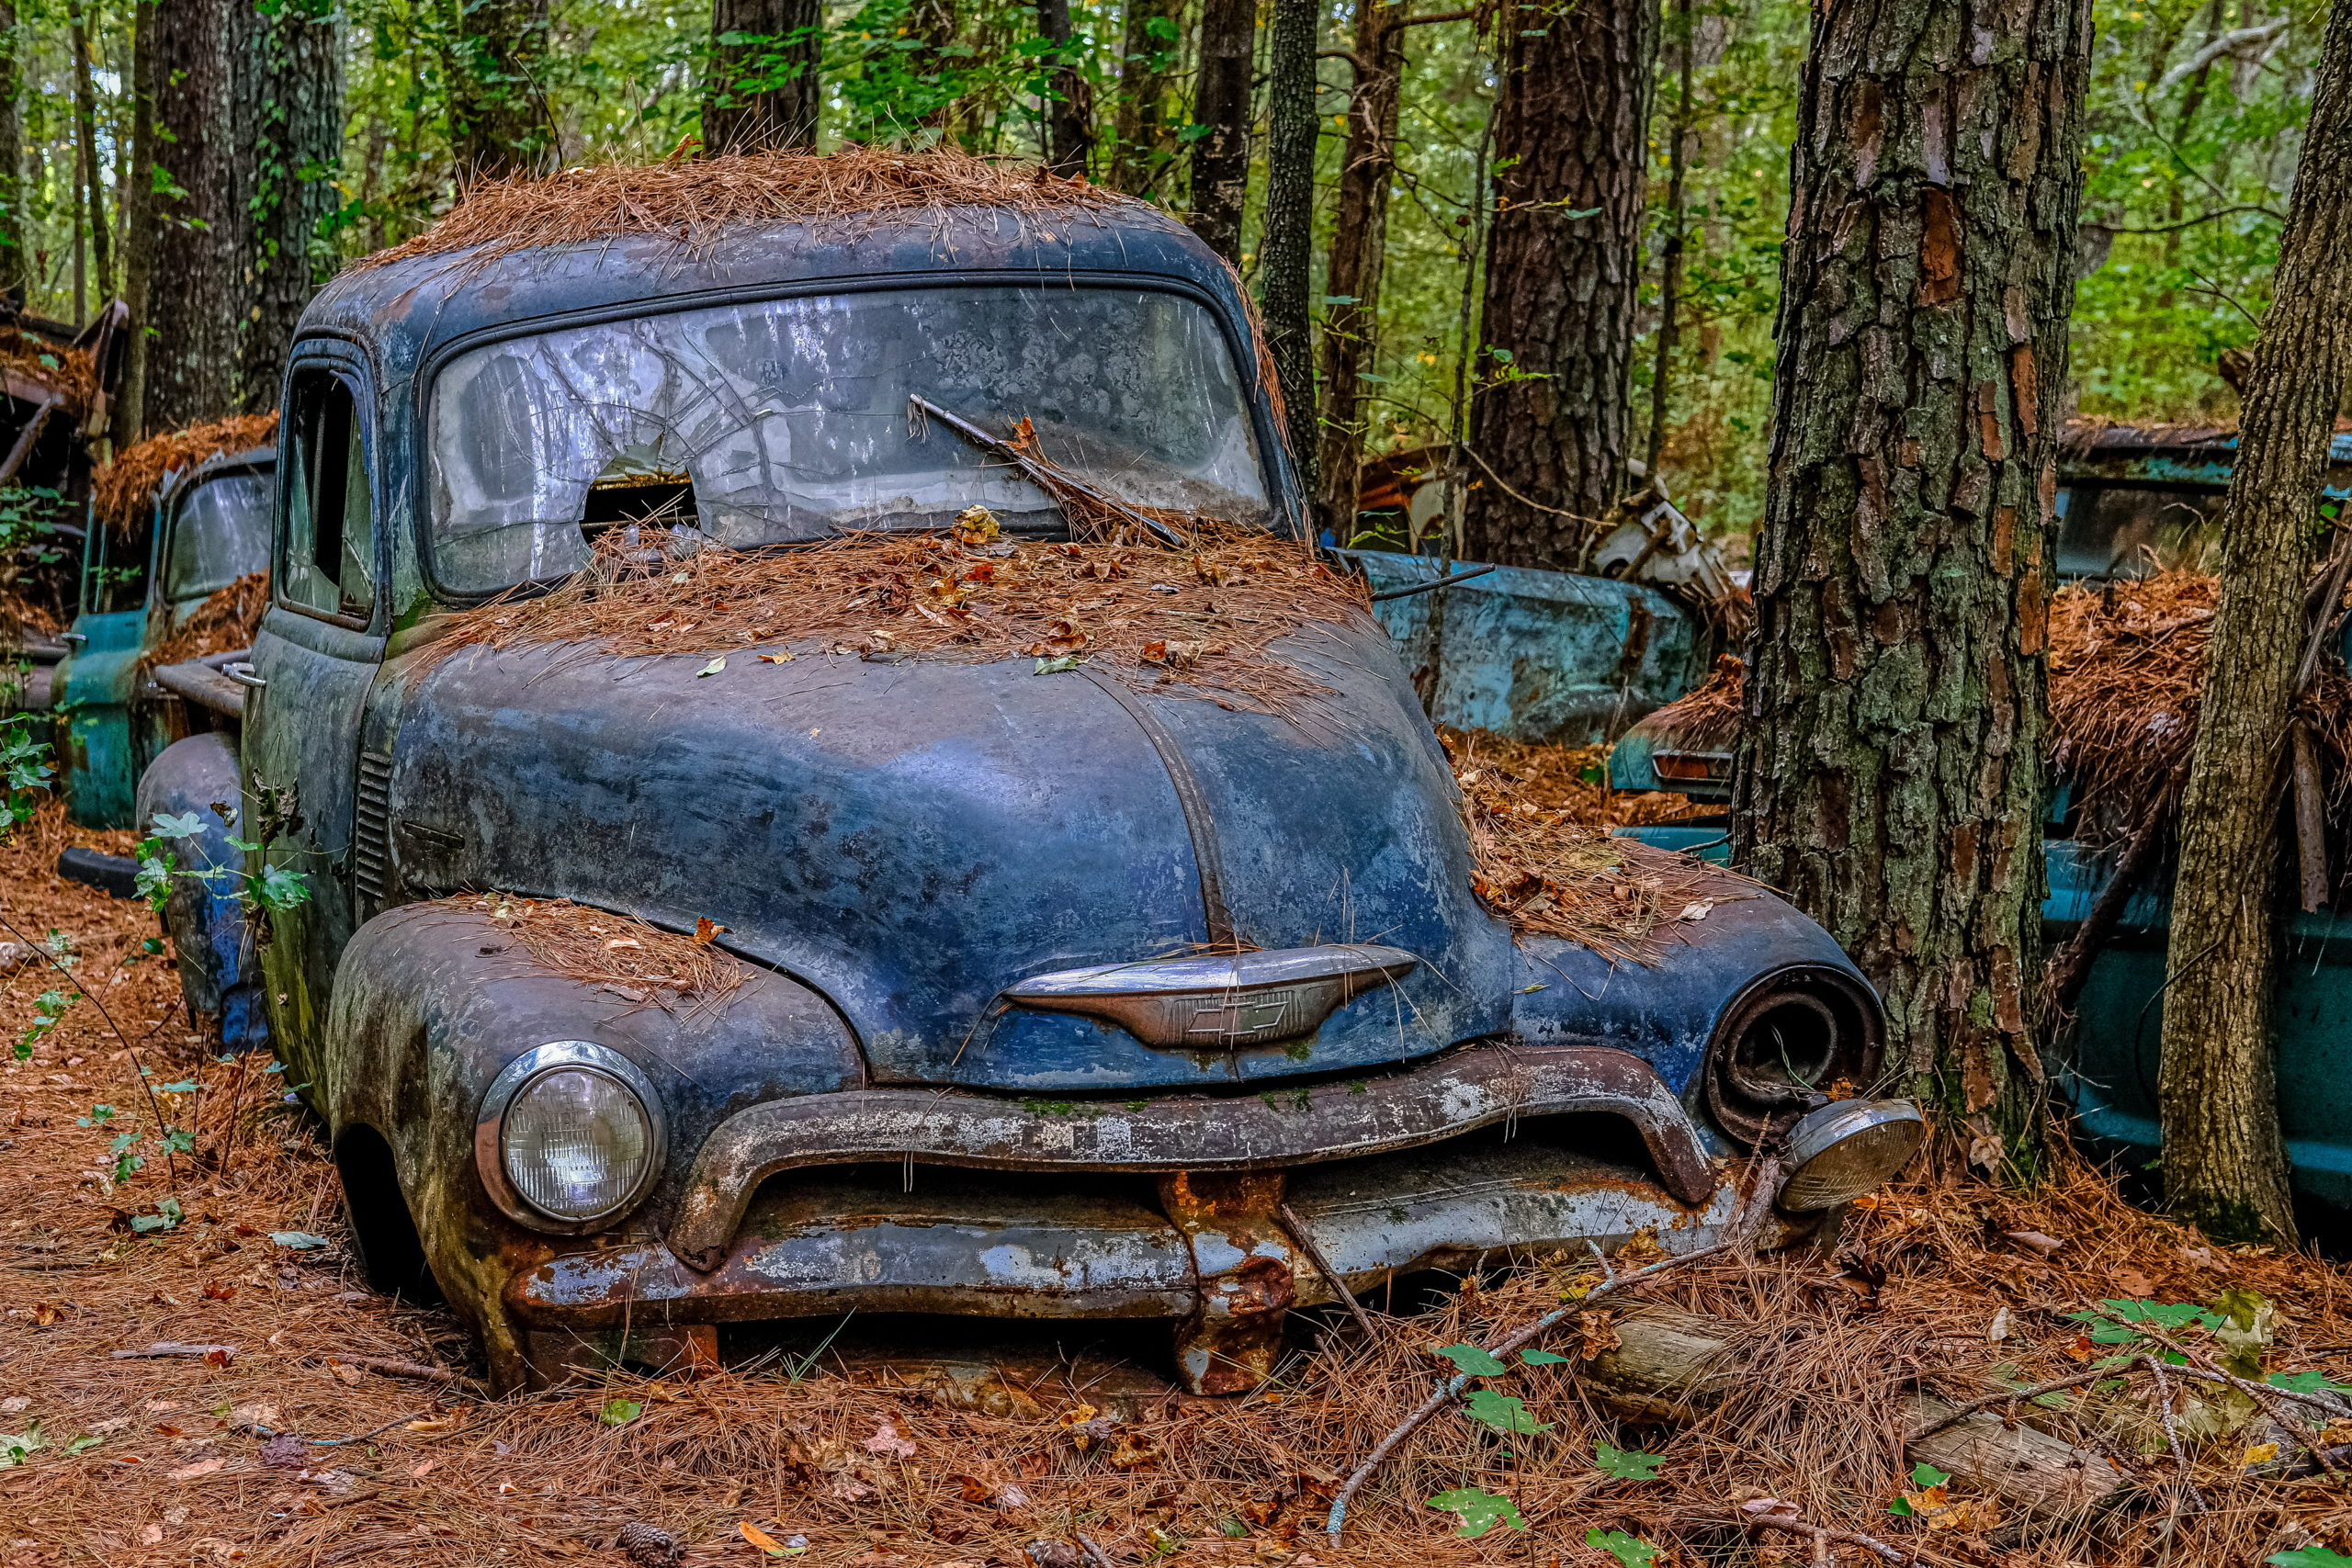 Cash For Junk Cars Smyrna, TN – Sell Your Car, Get An Instant Quote!